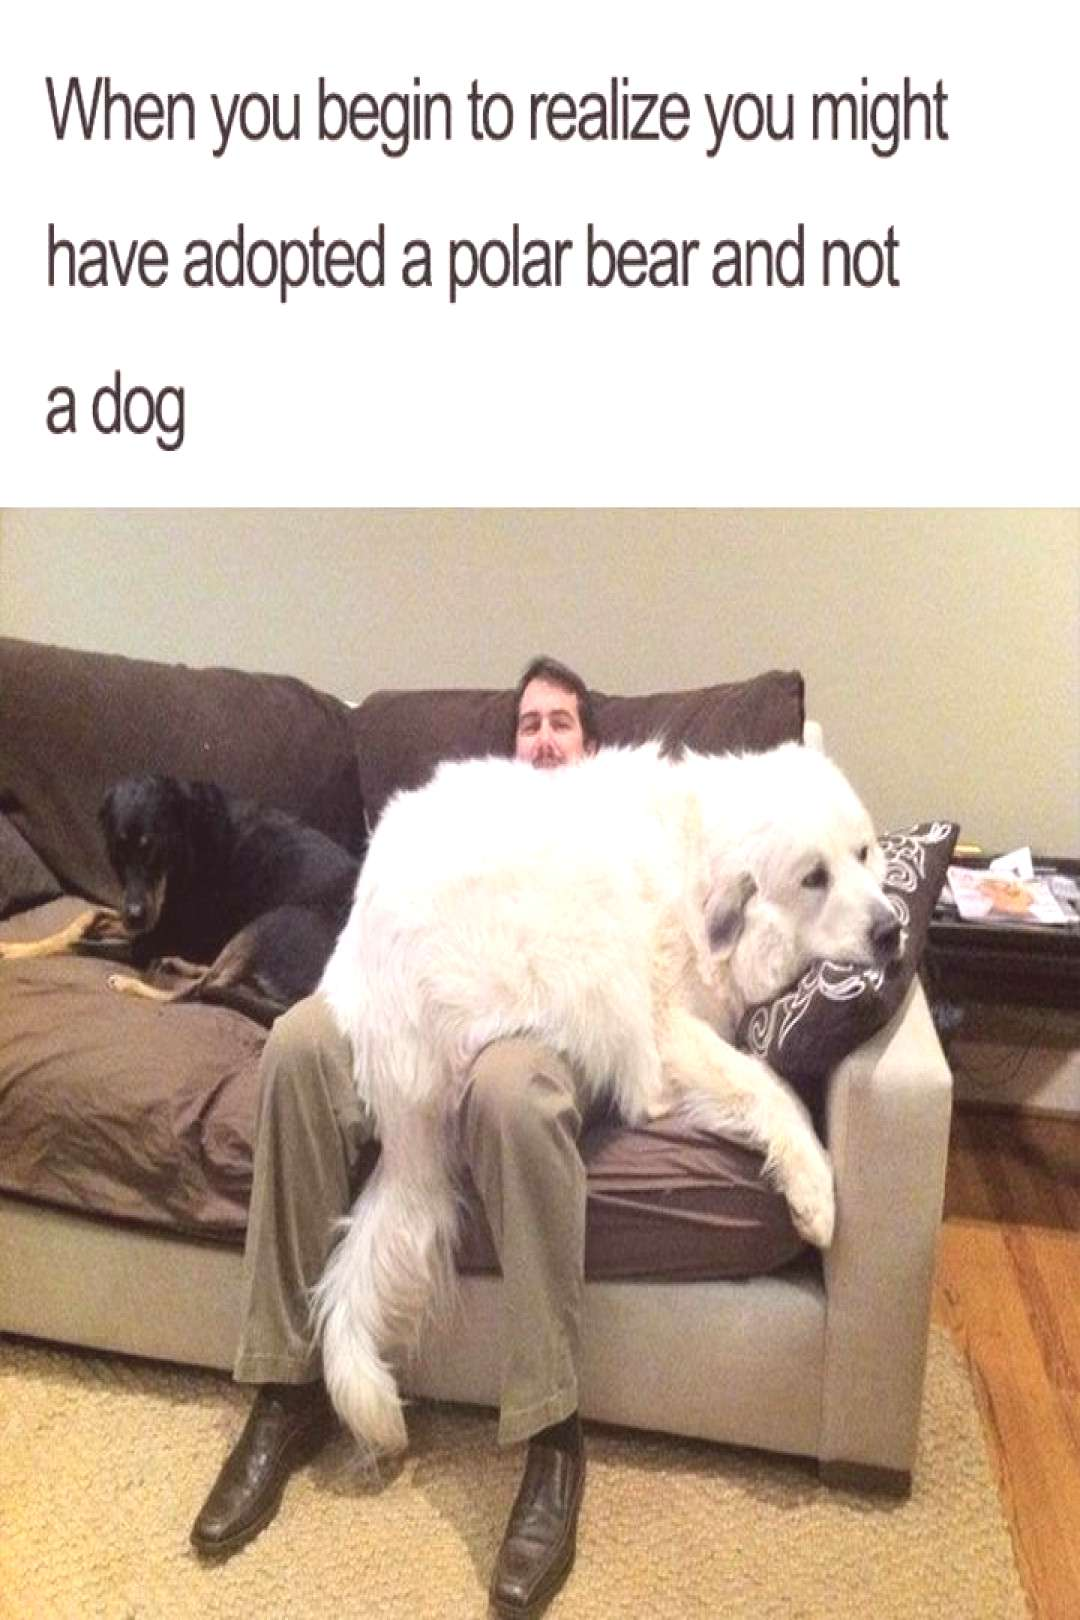 101 best funny dog memes - quotWhen you begin to realize you might have adopted a polar bear and not a